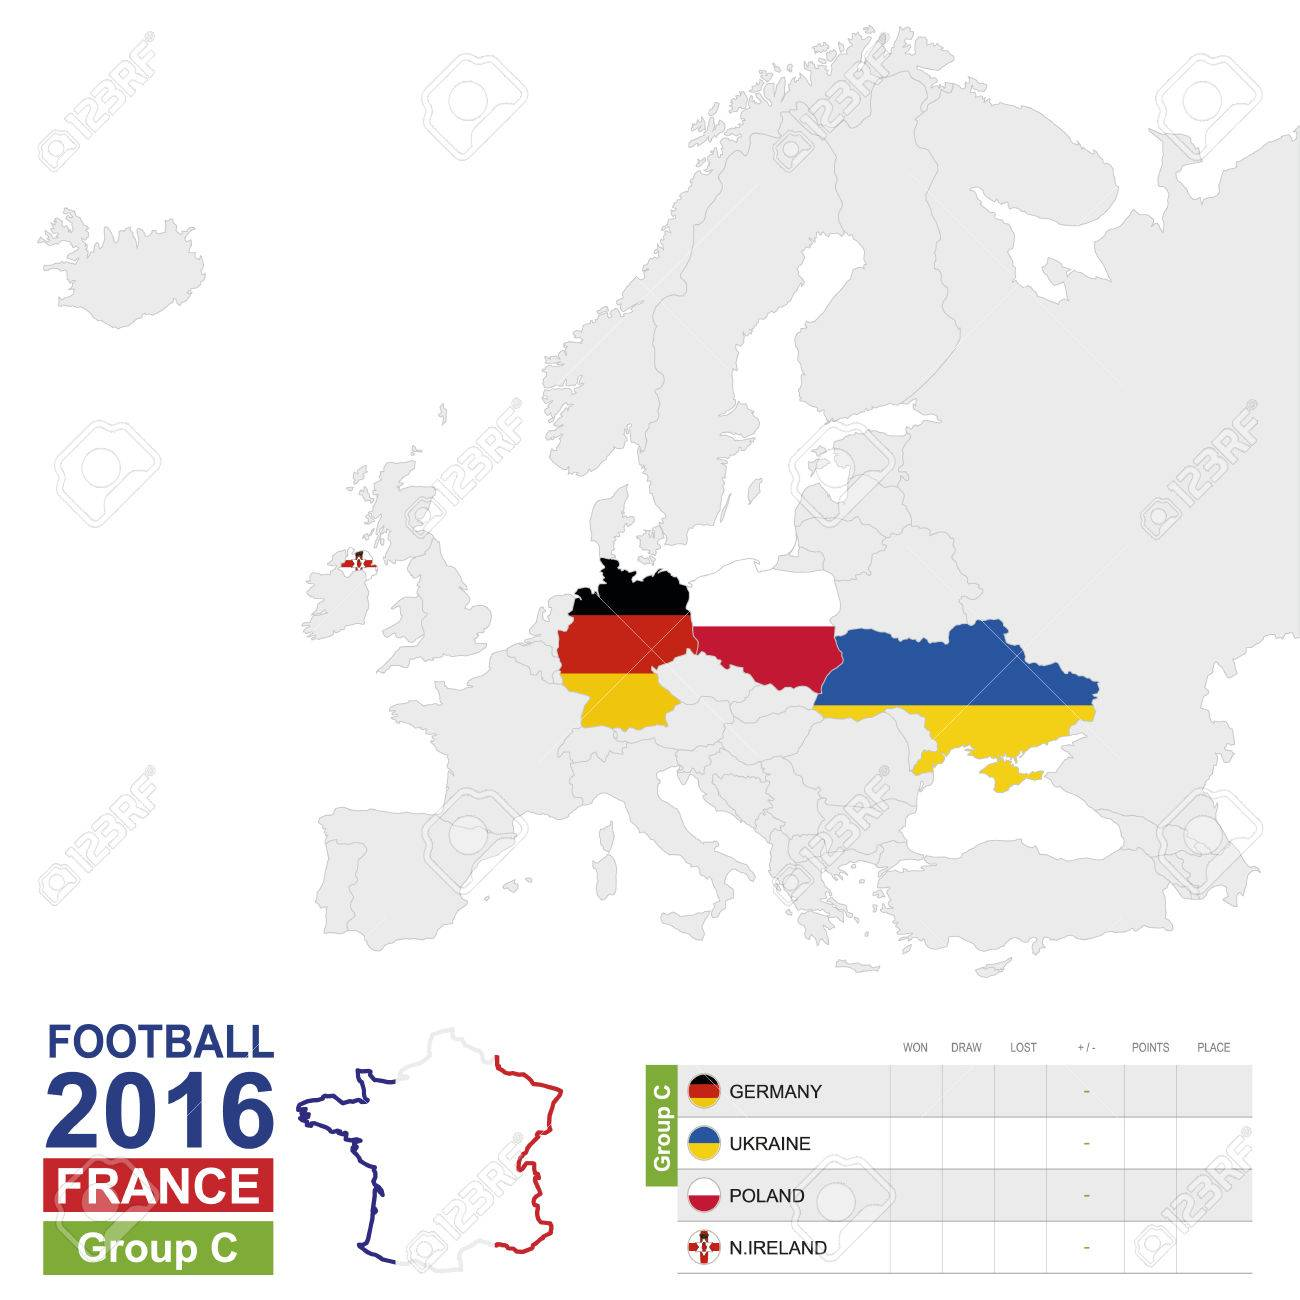 Football 2016 Group C Table Group C Highlighted On Europe Map Royalty Free Cliparts Vectors And Stock Illustration Image 55079461